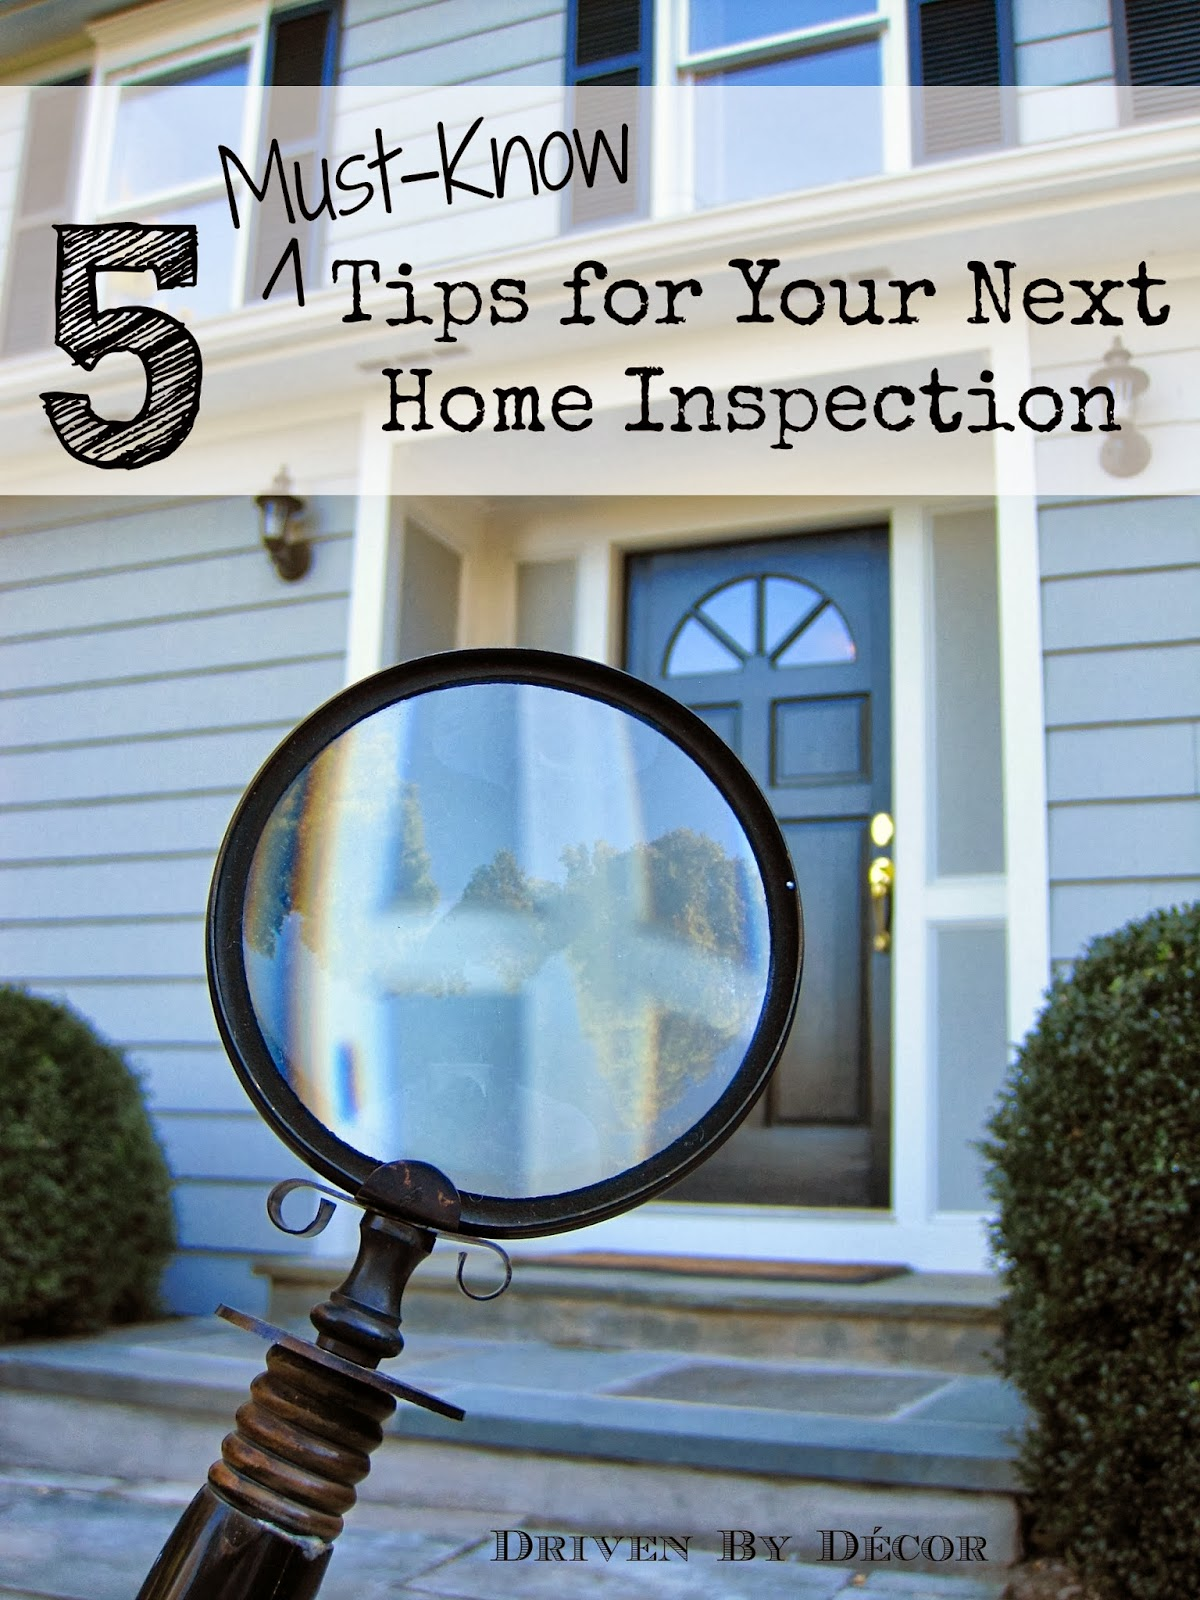 home inspections 5 mustknow tips driven by decor